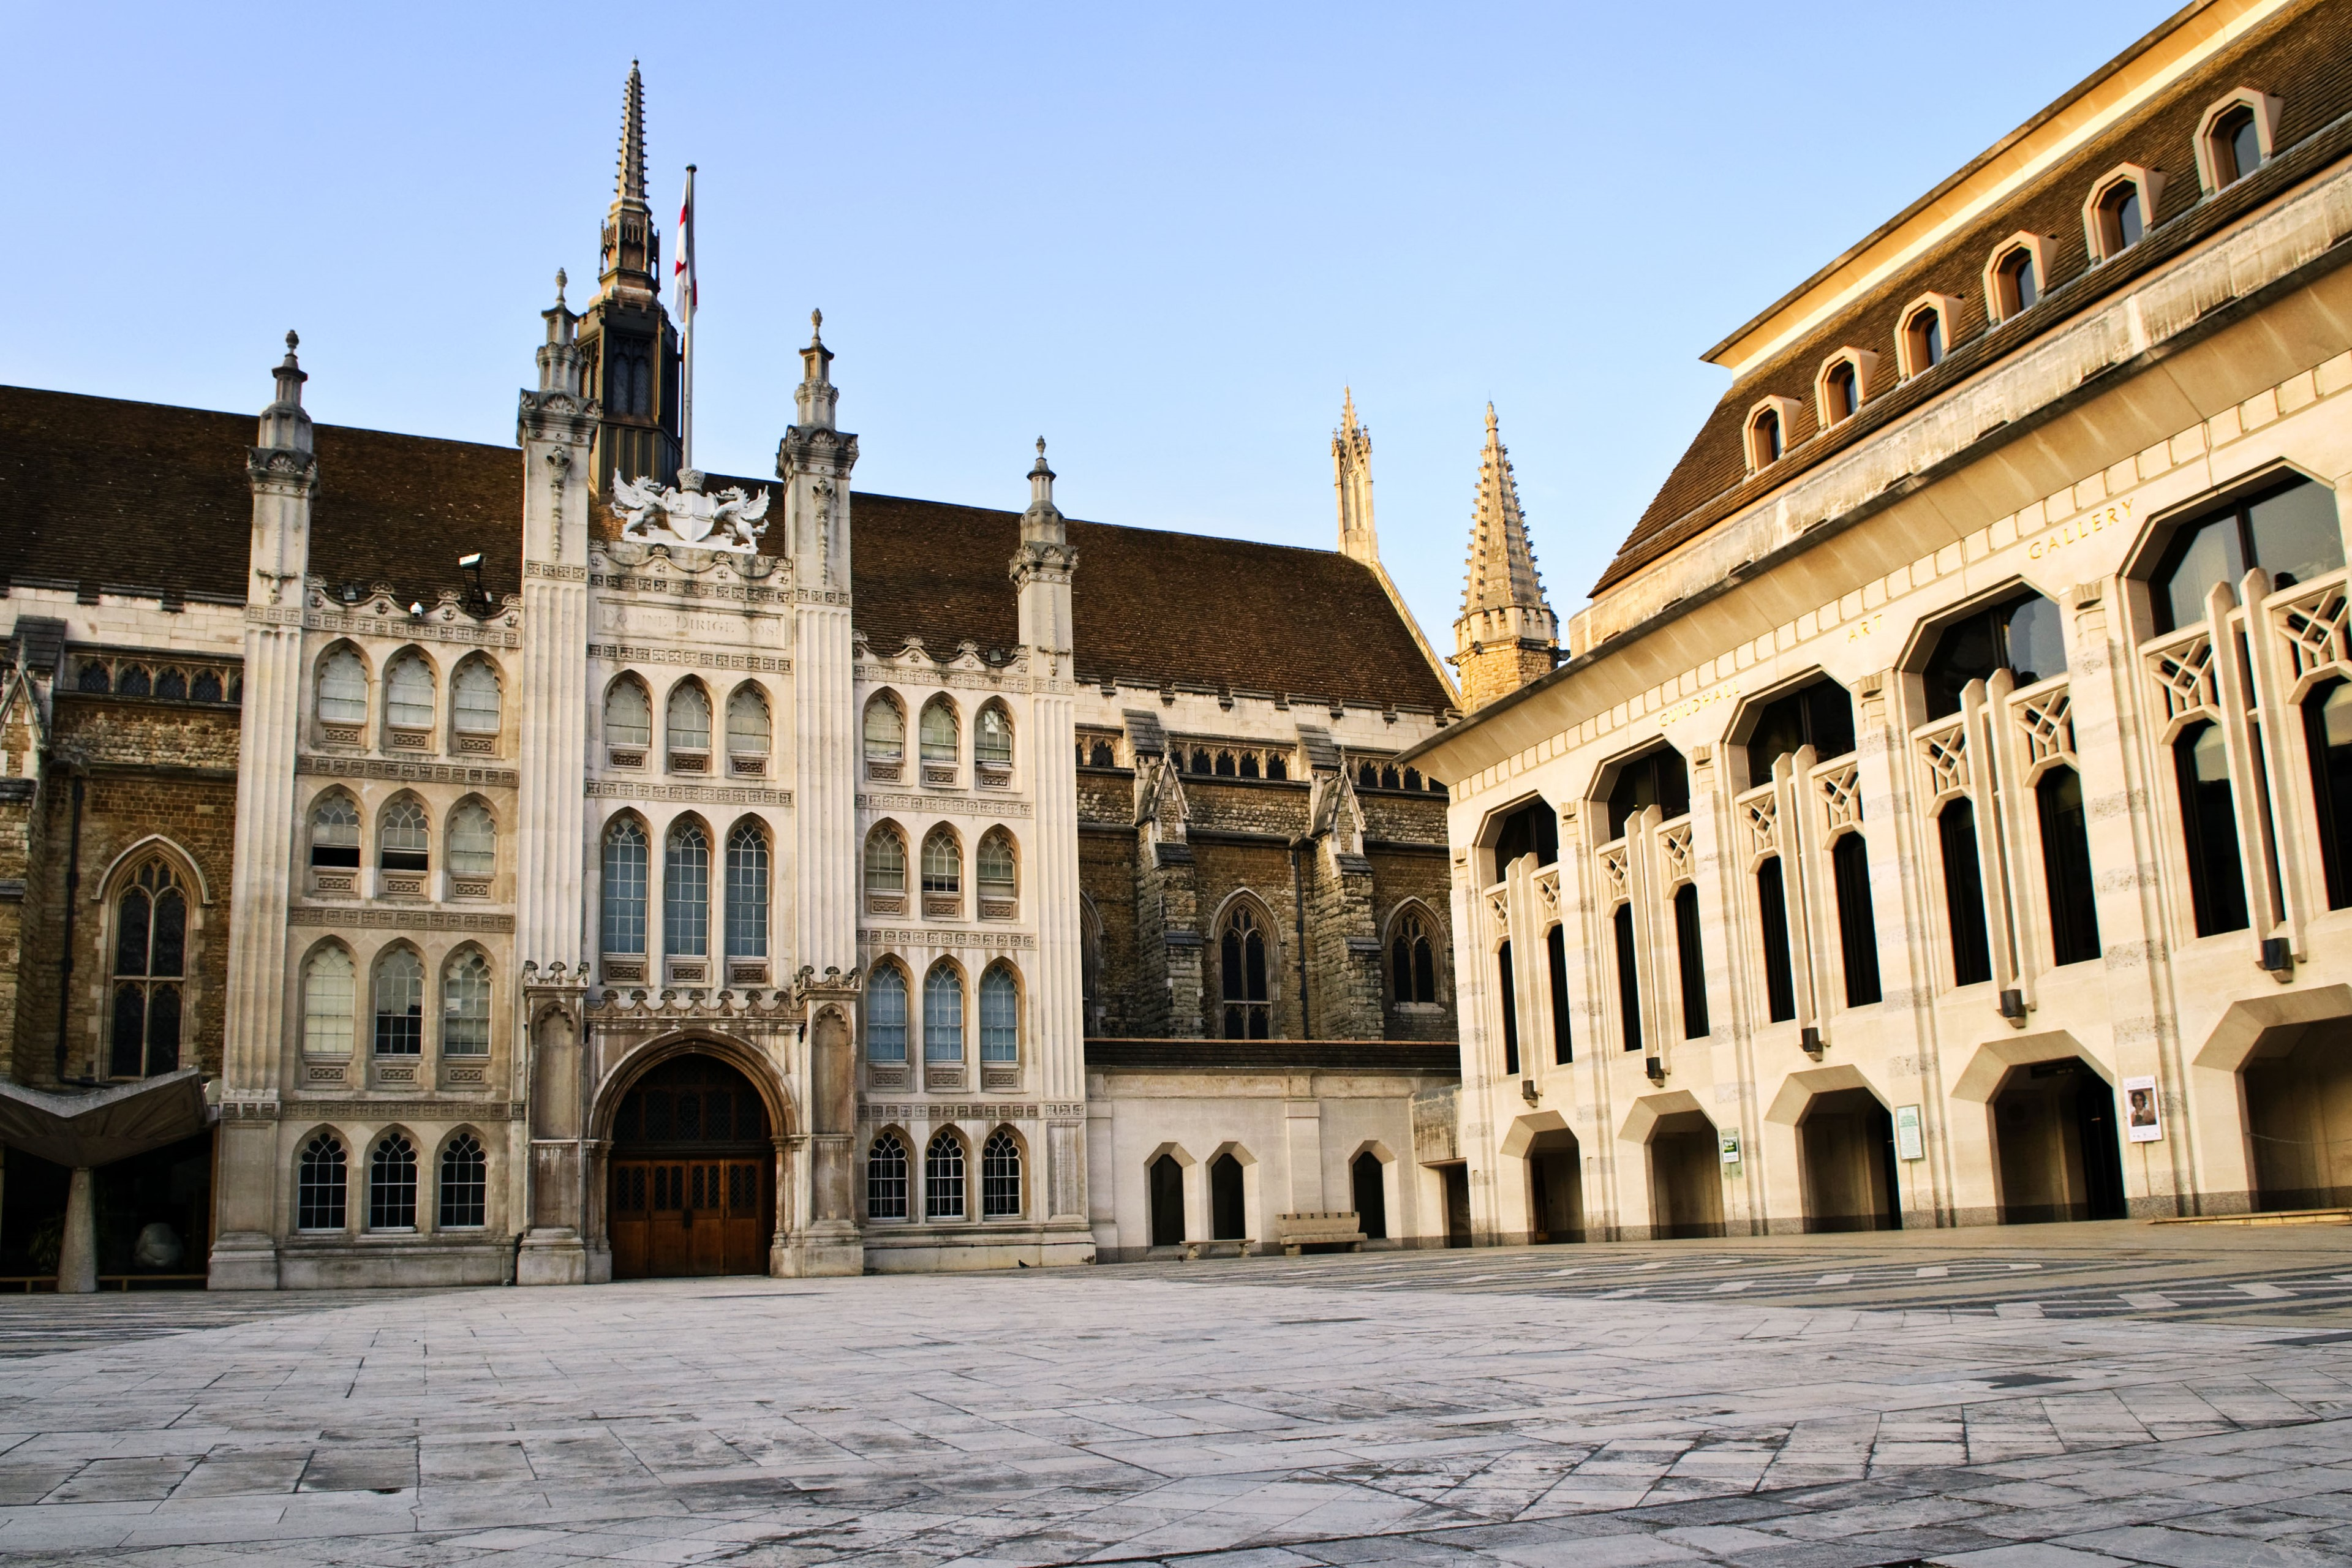 The Guildhall building in the city of London